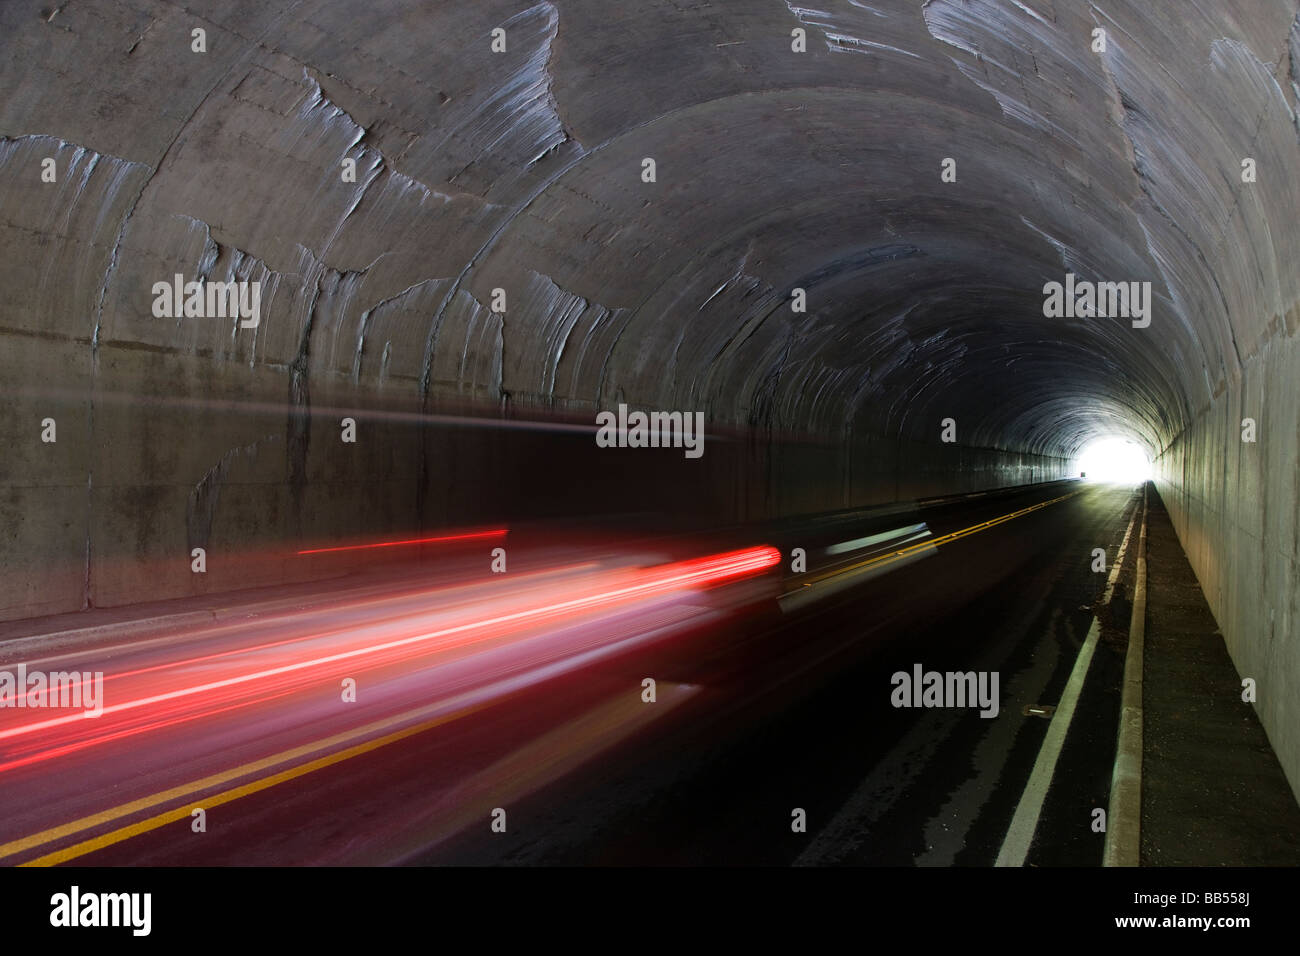 The Skyline Drive tunnels by Mary s Rock & winds along the Blue Ridge Mountains in Shenandoah National Park - Stock Image